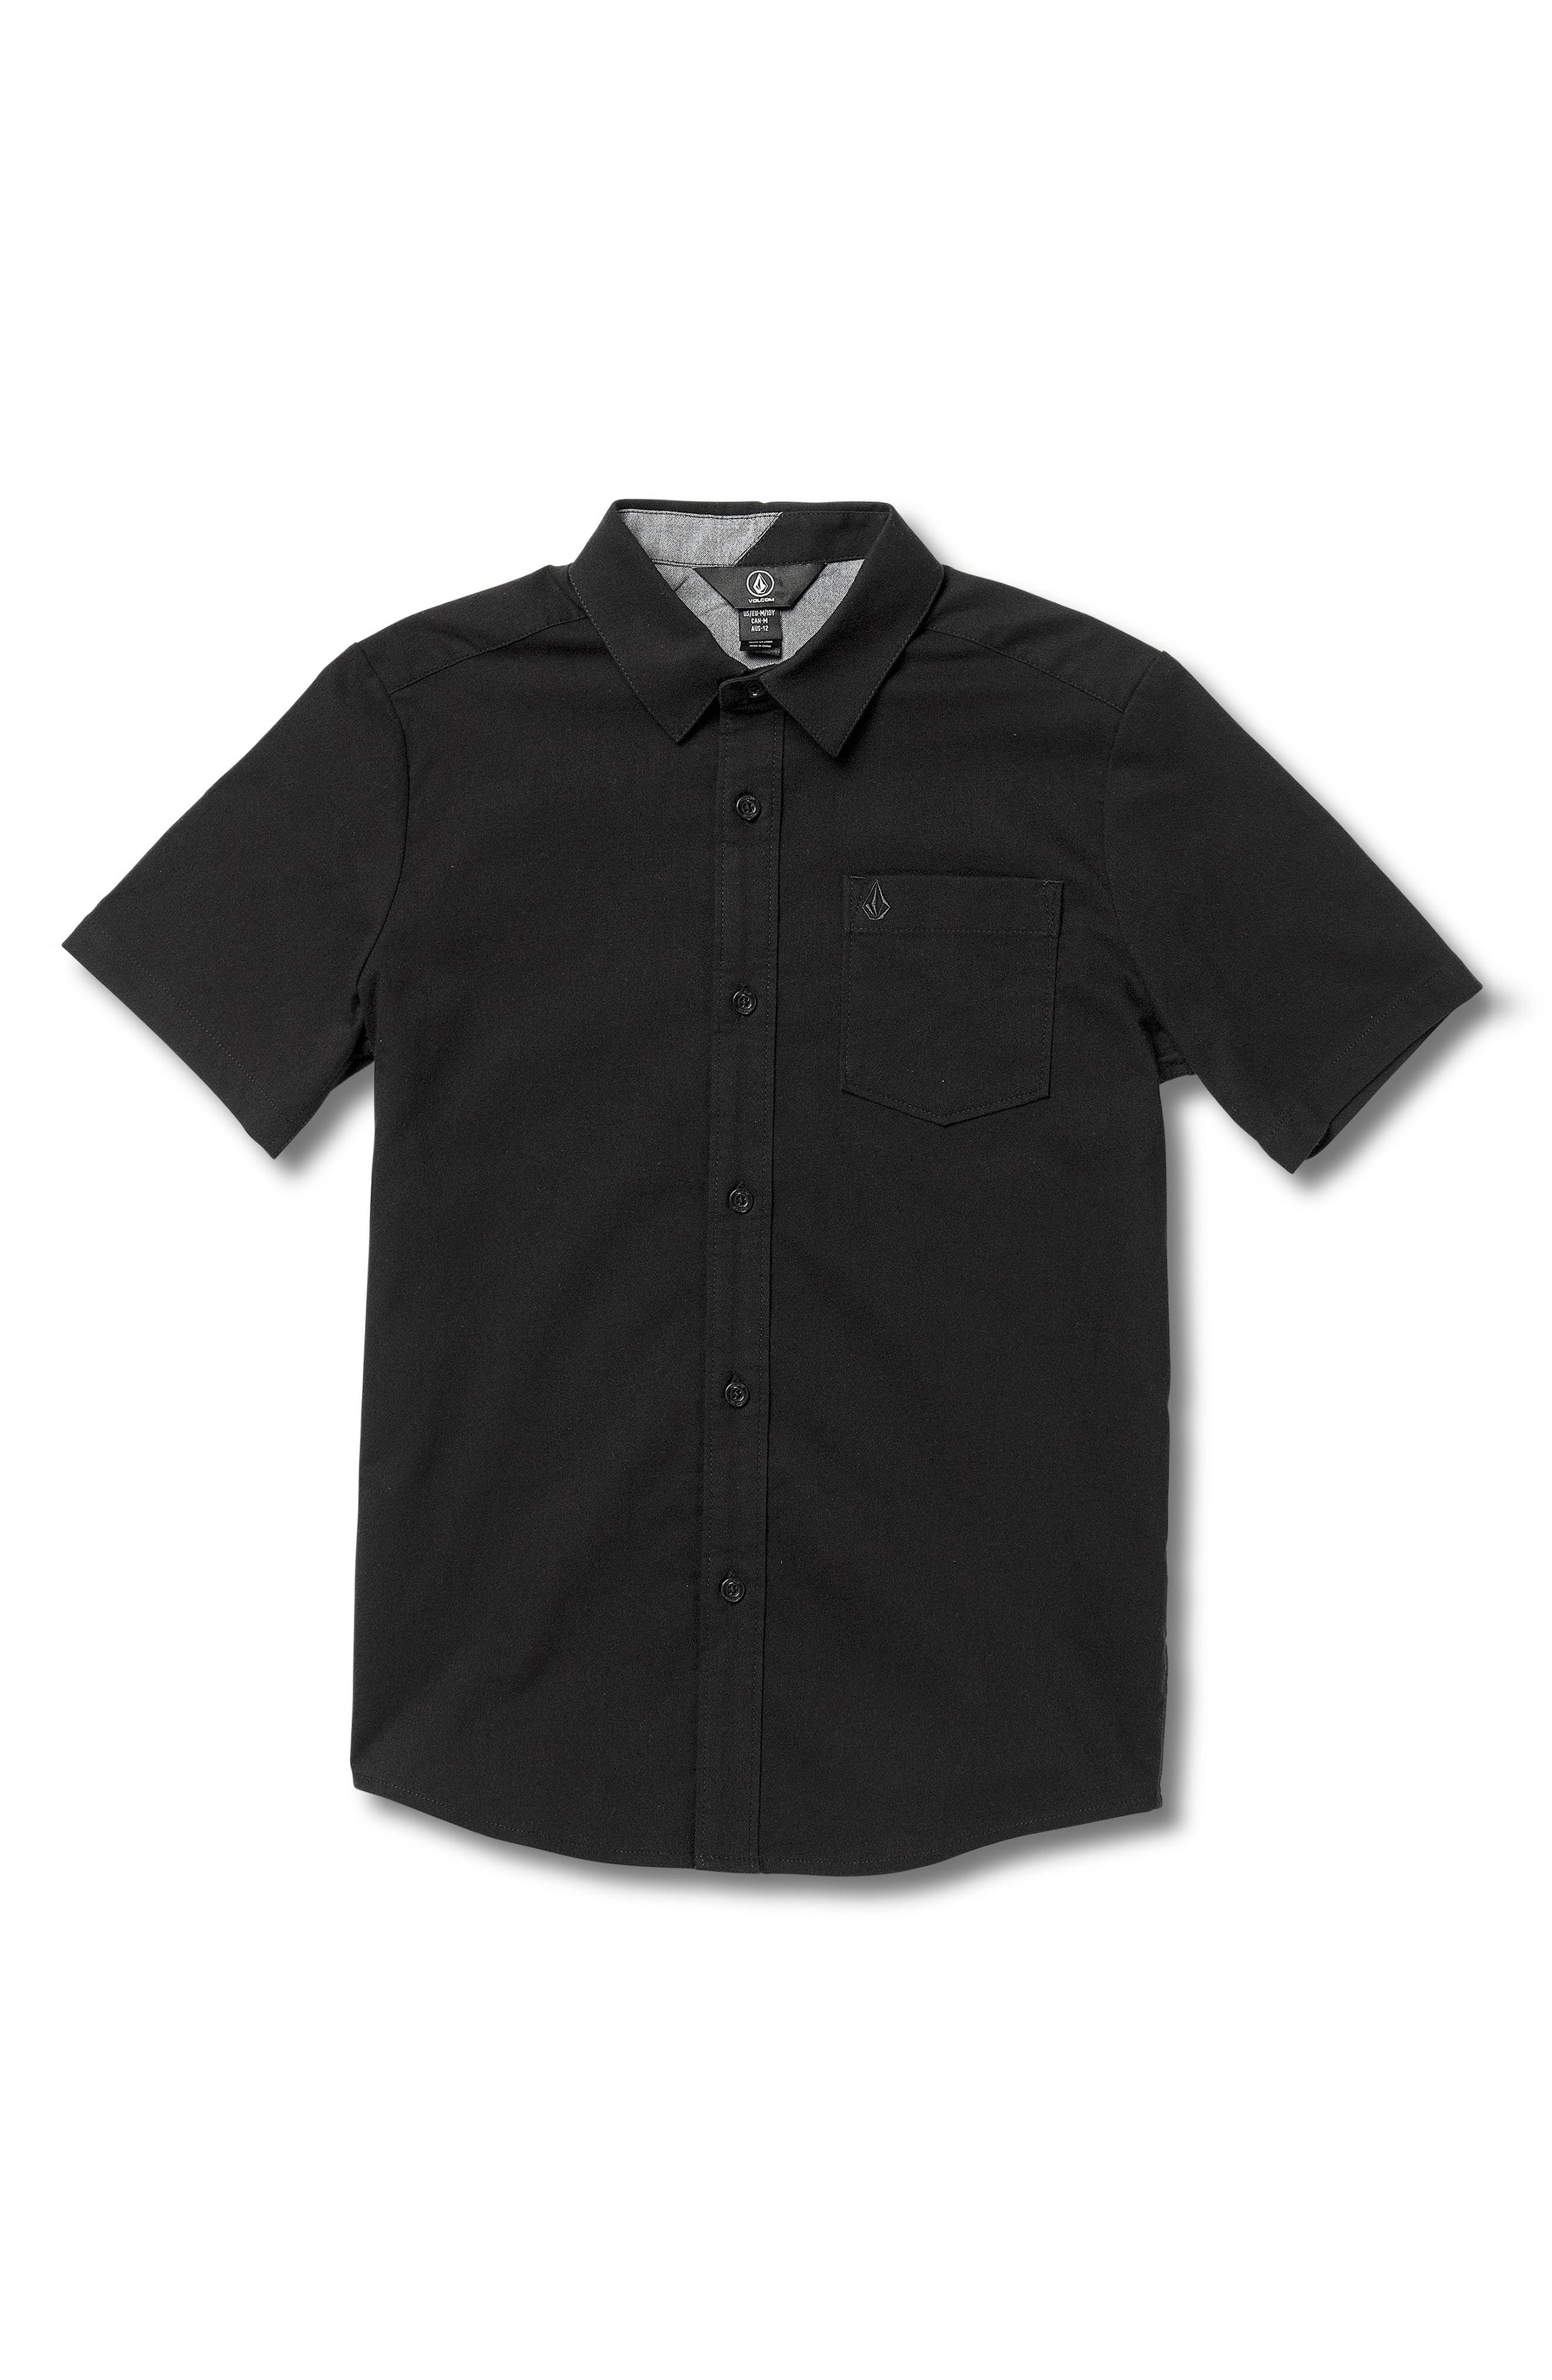 Everett Oxford Shirt,                             Main thumbnail 1, color,                             001